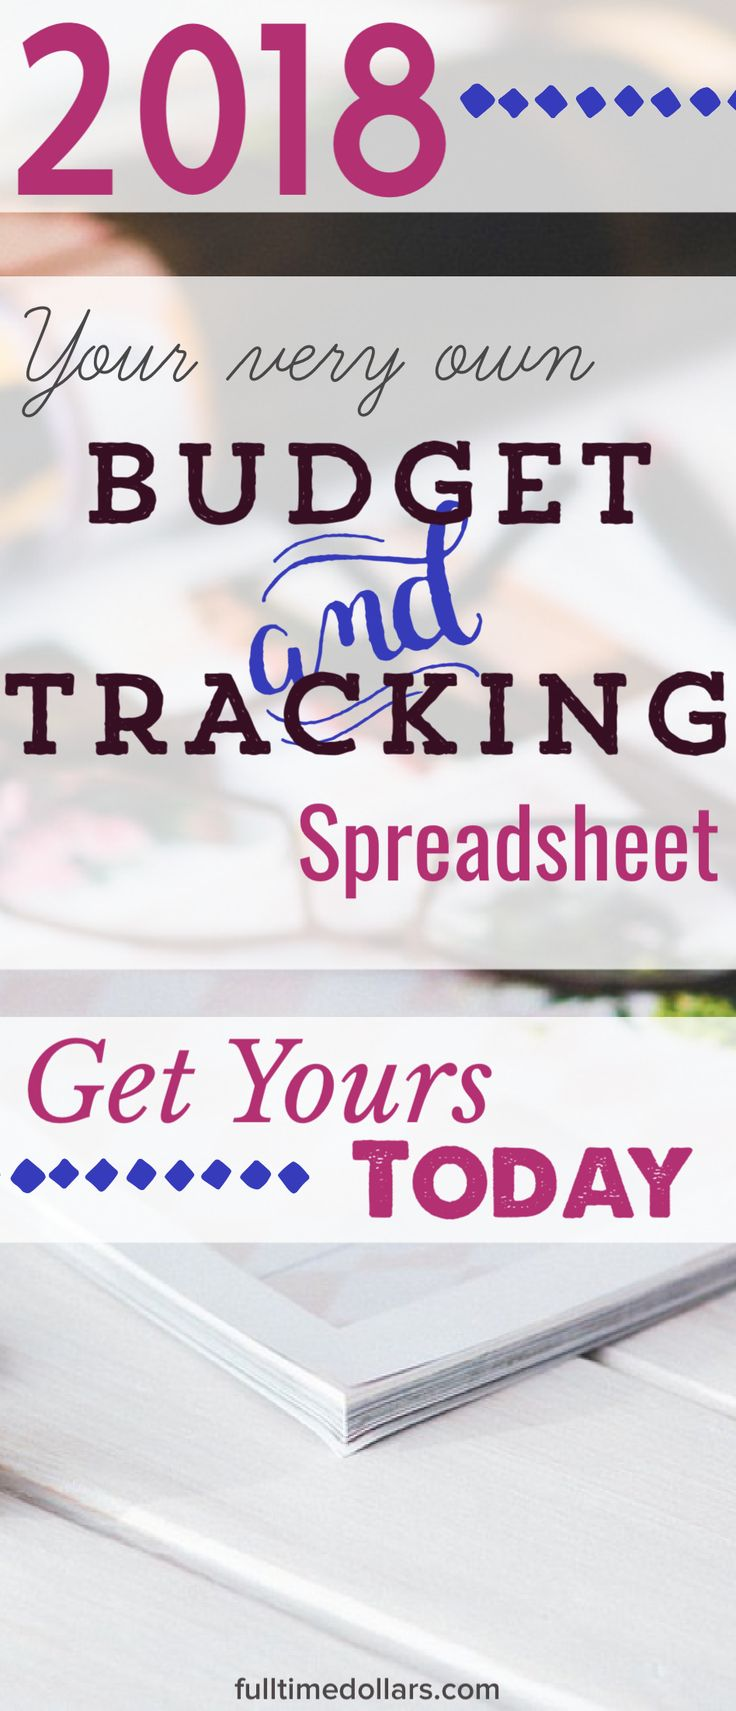 HP | Full-Time Dollars • Personal Finance & Lifestyle ••• Are you having trouble spending less than you earn? Do you need a new and improved way to budget and track your income and spending? Get access to the spreadsheet tool that is going to change how you budget your money. This is the first step towards your eventual financial prowess! | Budget spreadsheet | Financial planning | Budget like a boss |